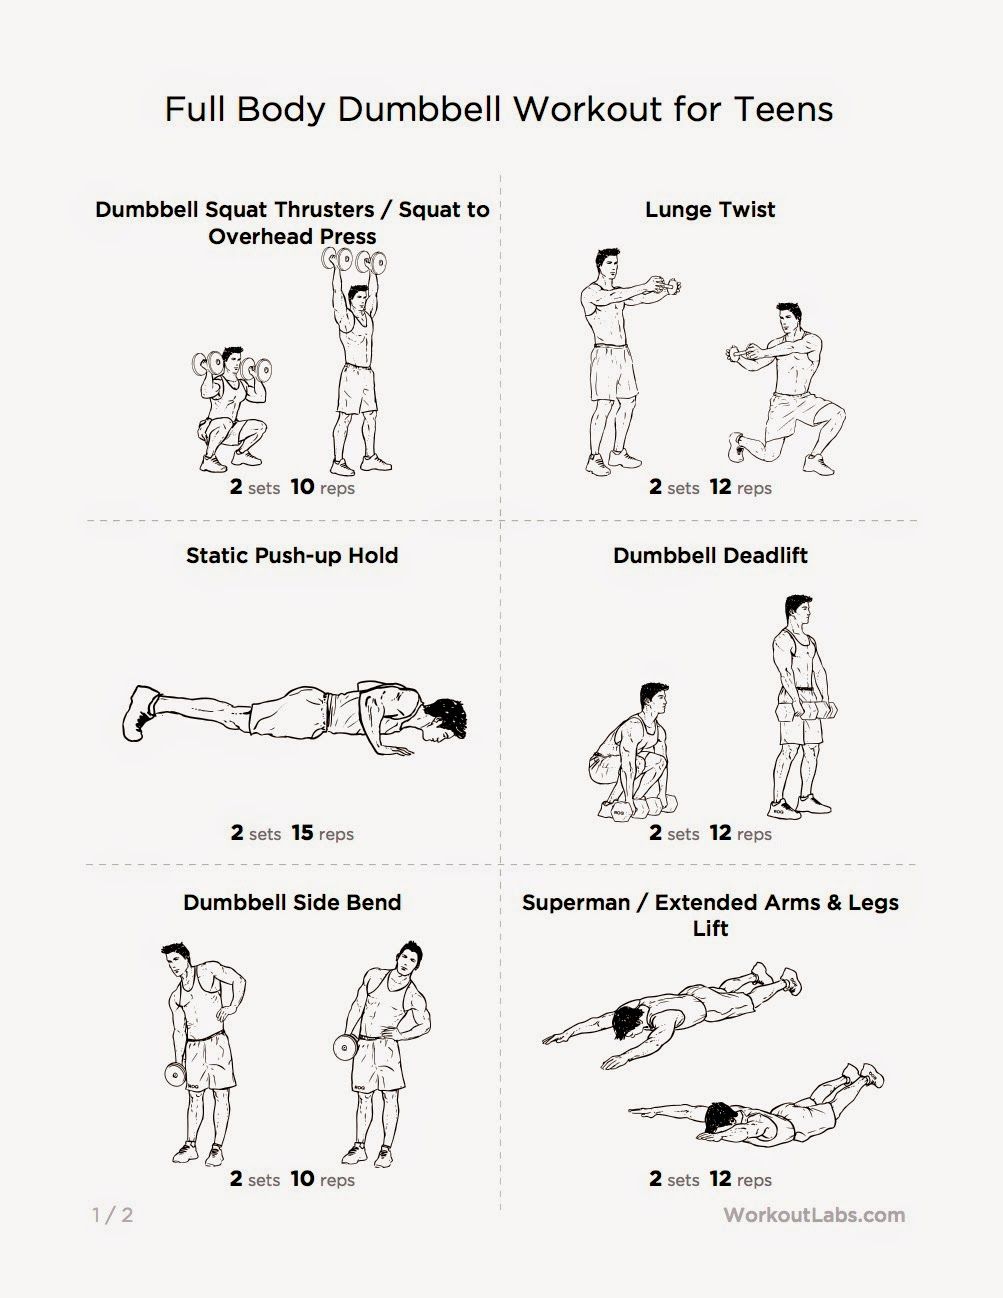 This Workout Introduces Teens To The Compound Exercises That Are Responsible For Building Strength And Endurance While Improving Posture Helping